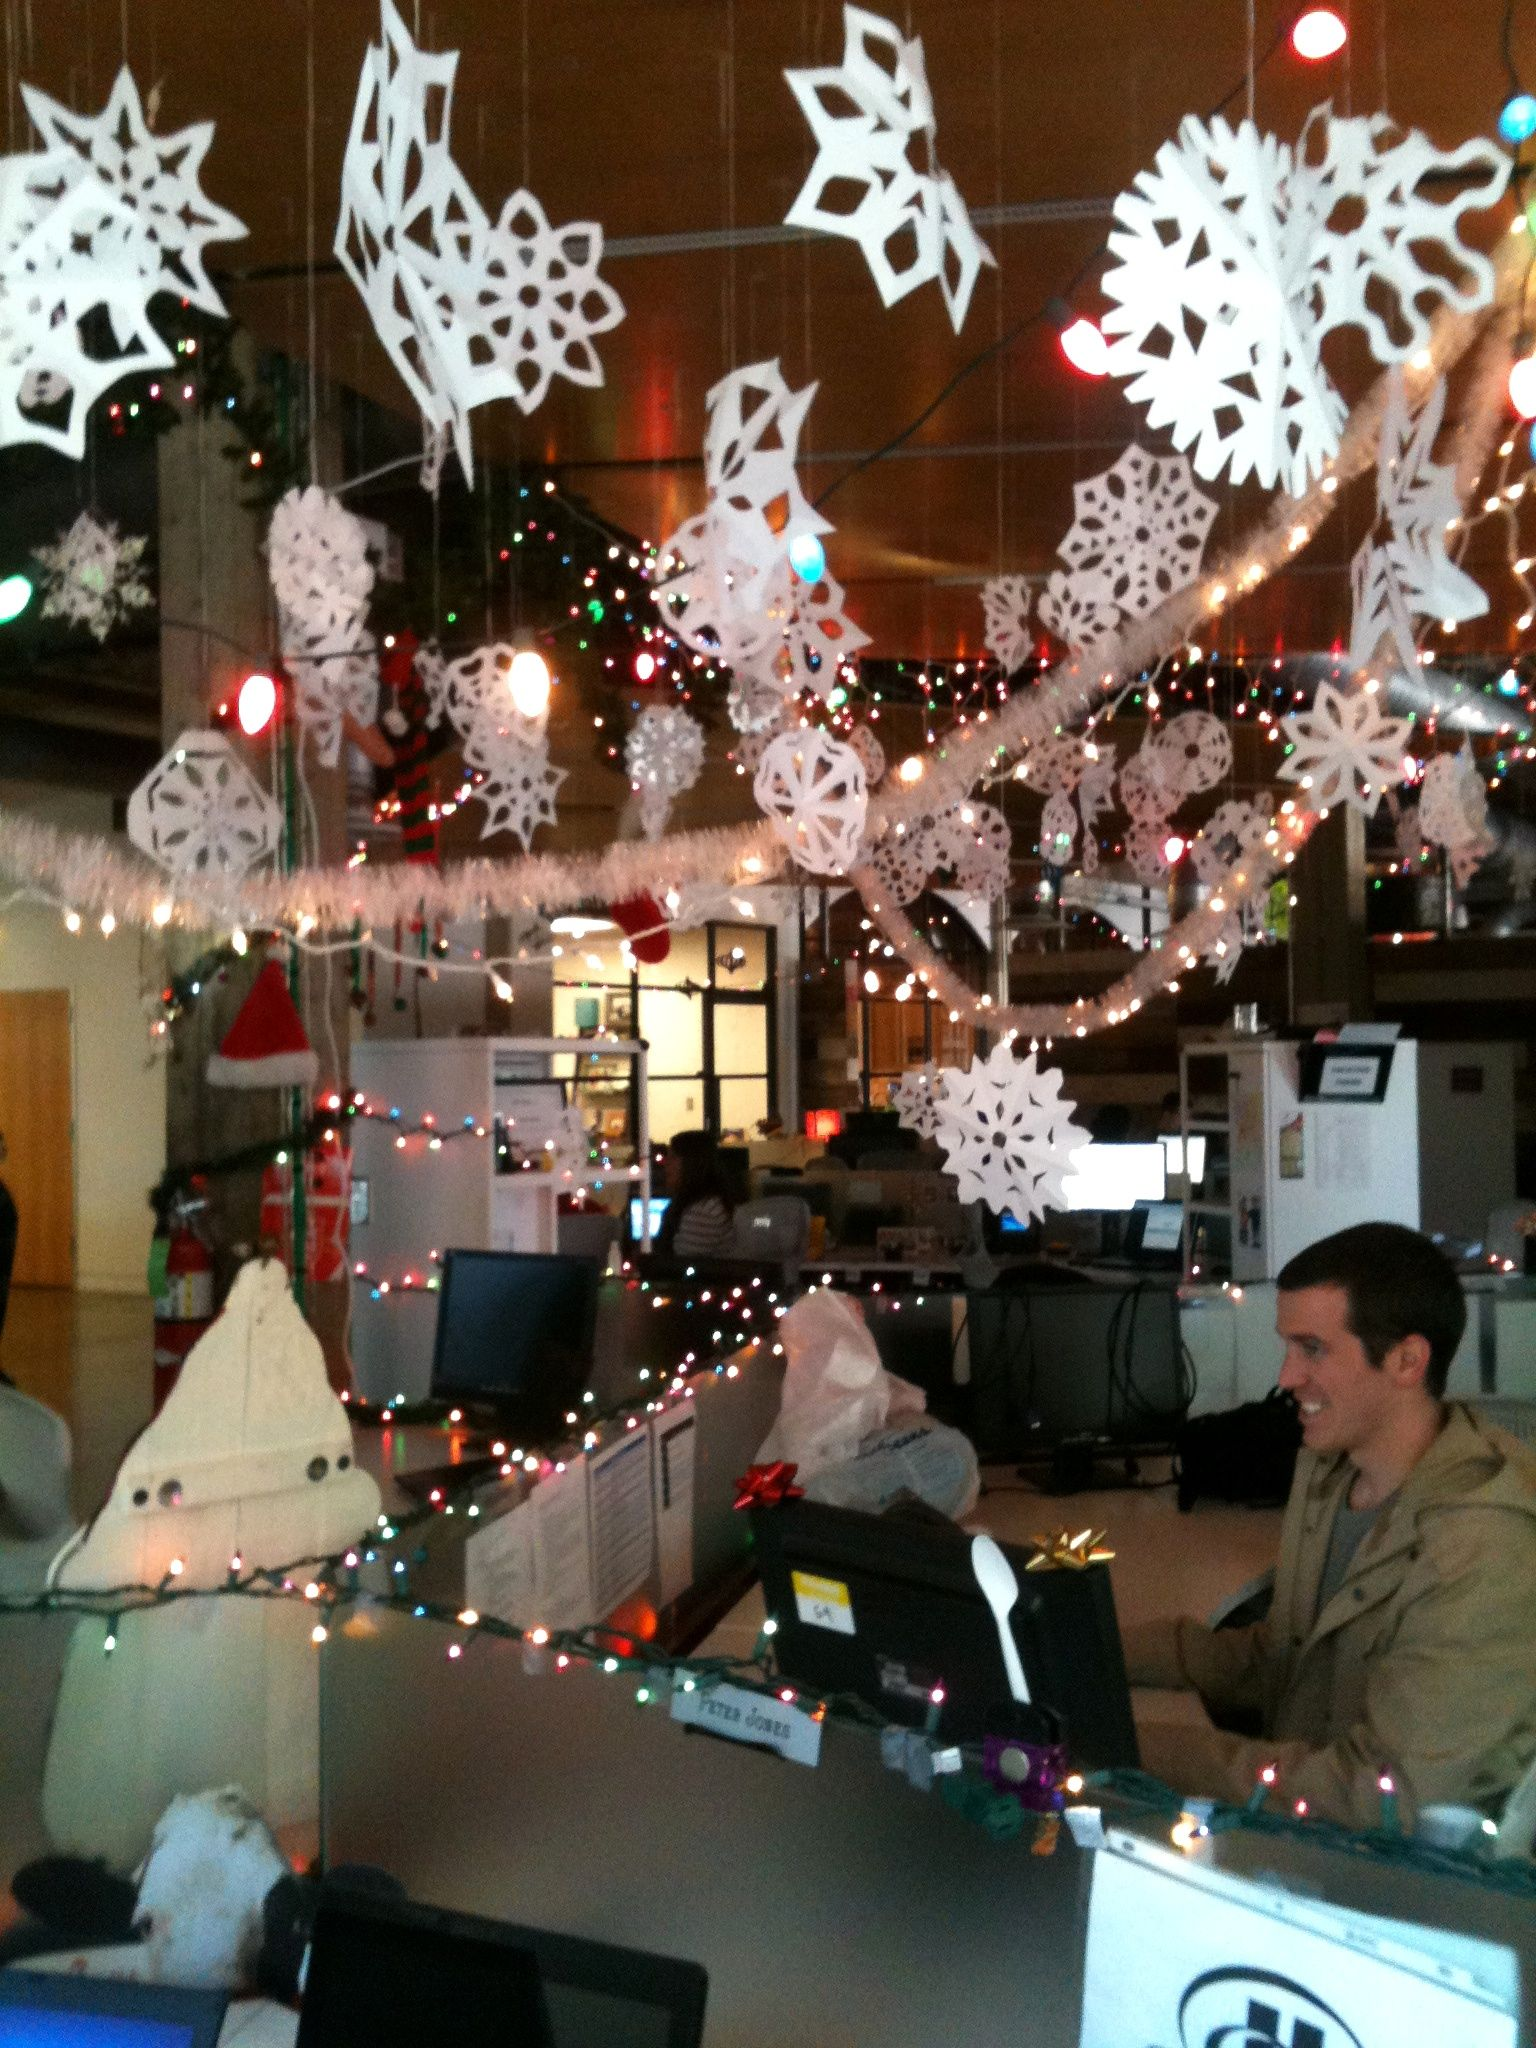 office xmas decoration ideas. awesome ideas for office christmas decoration - happy halloween day xmas m